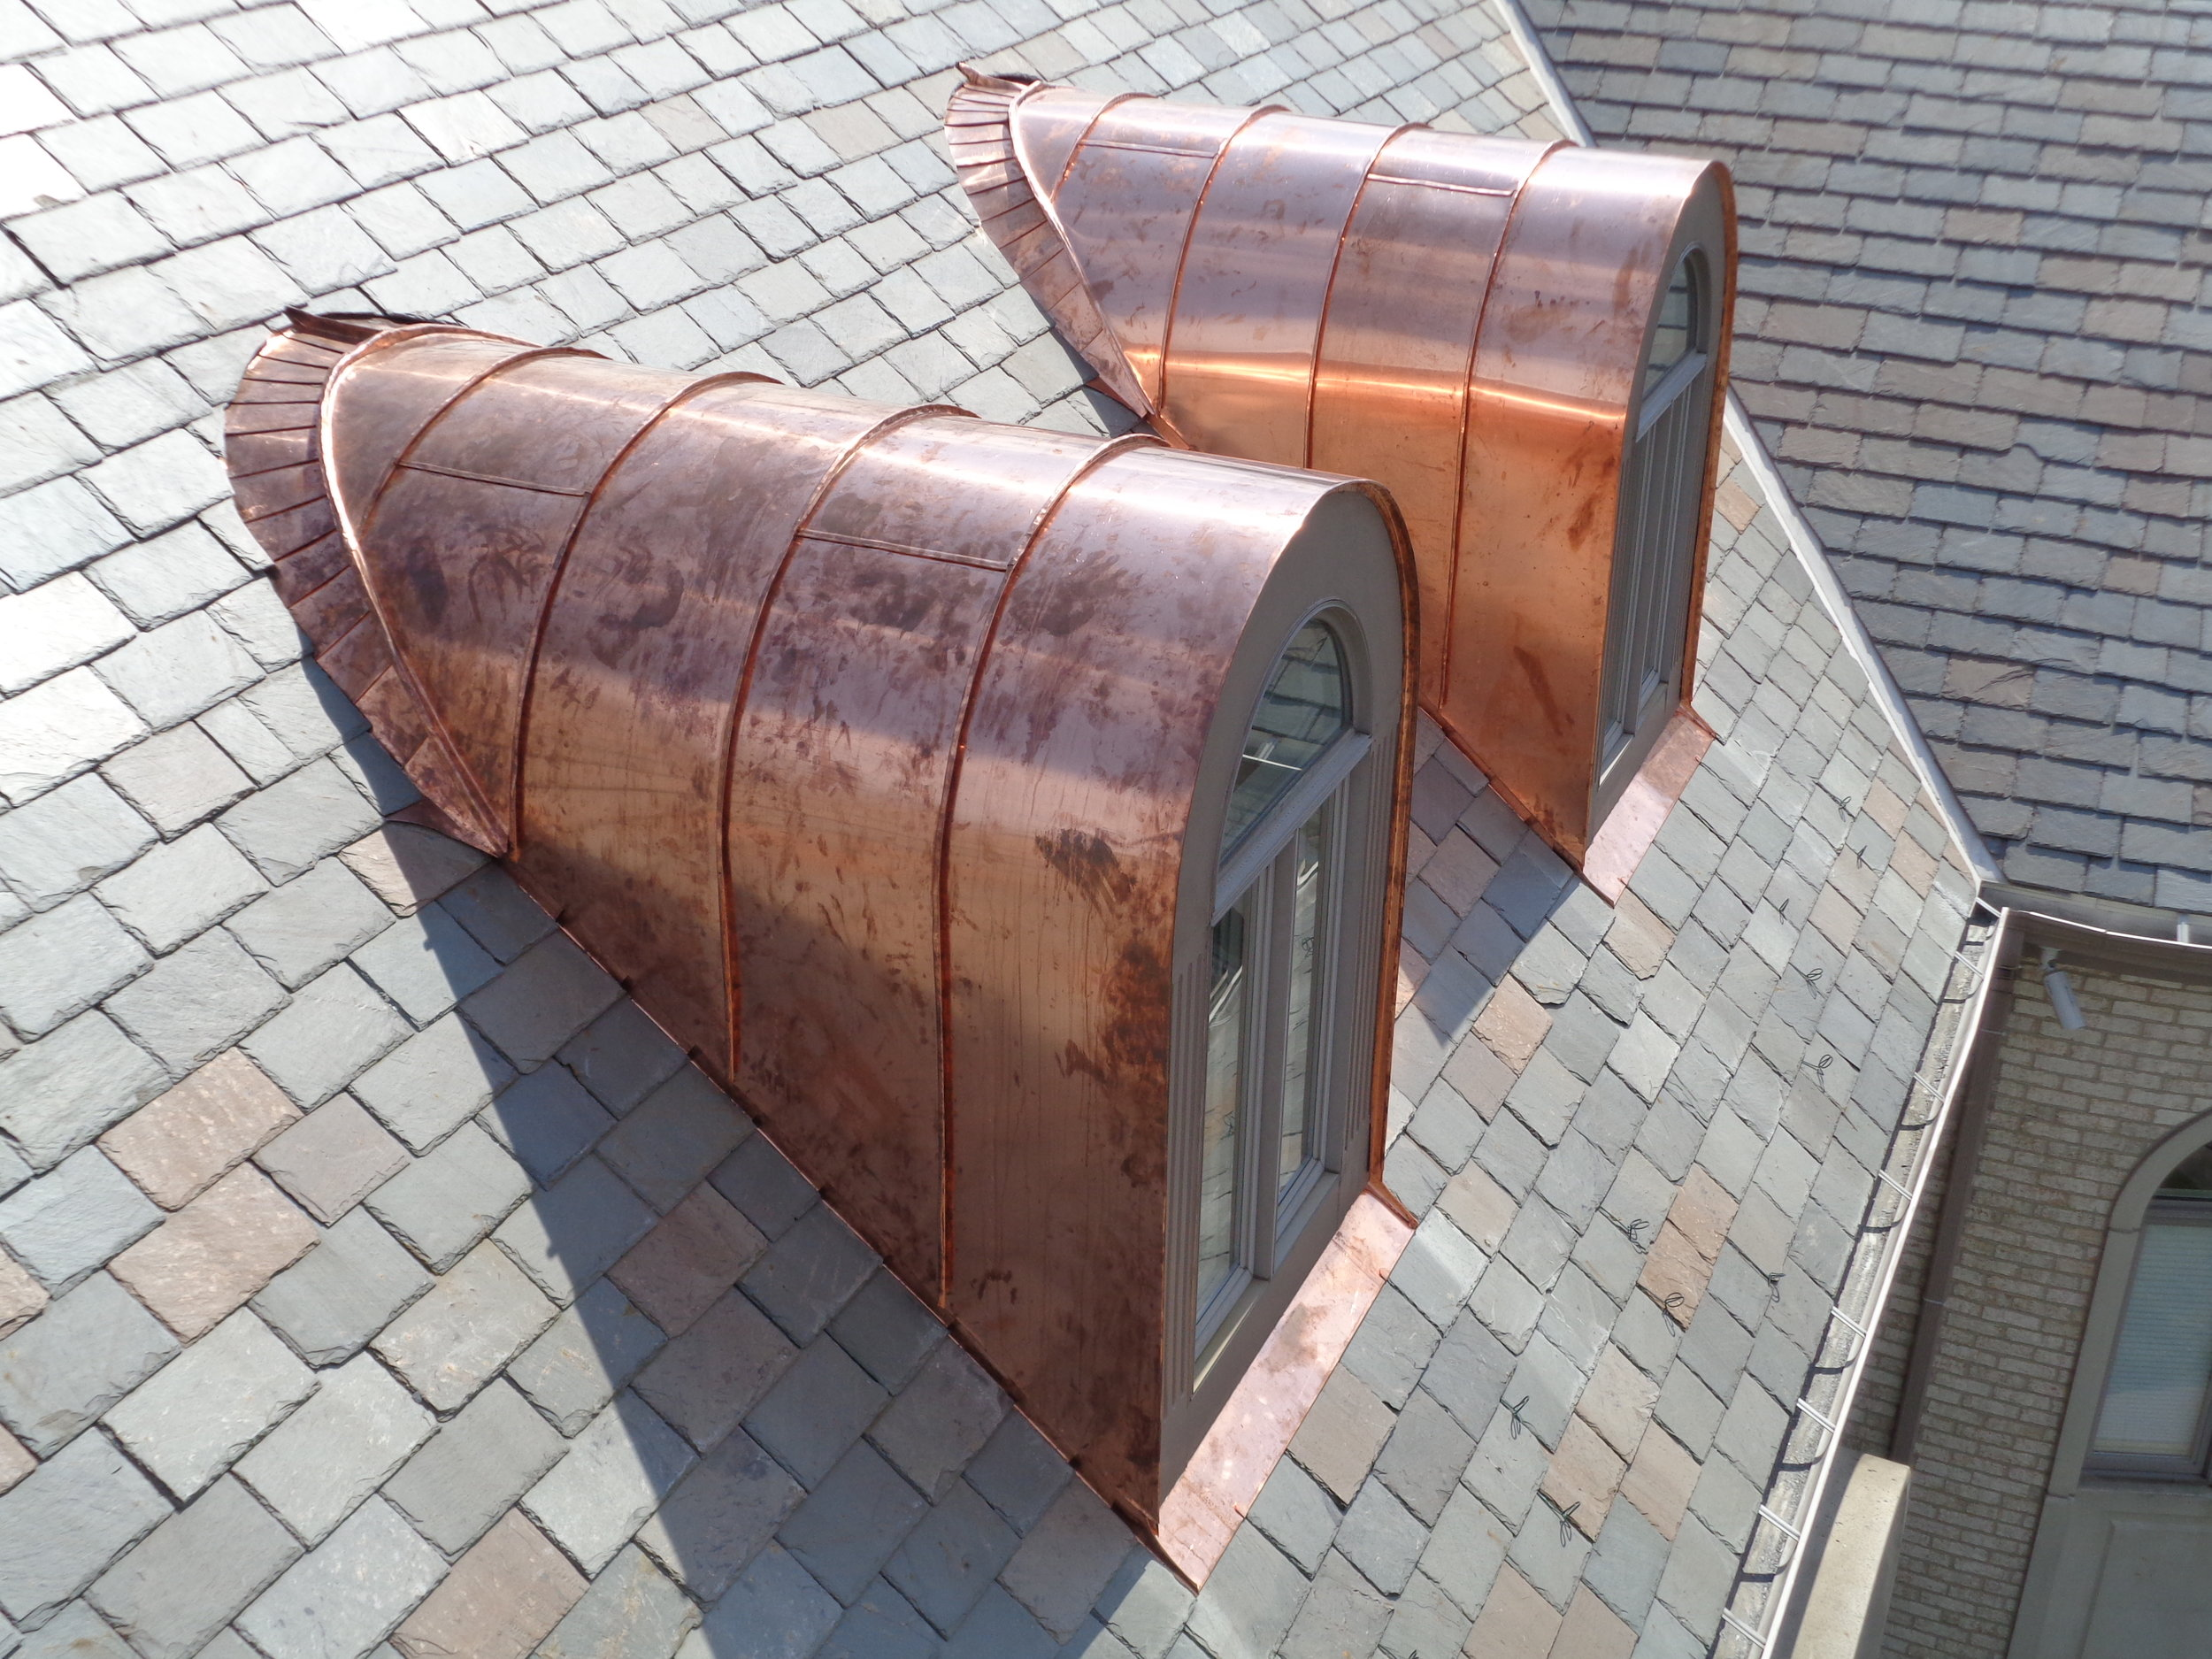 Barrel Dormers - With continuous pleated valley pieces and hand seamed 20 ounce copper panels. Pittsburgh, PA (June 2017).